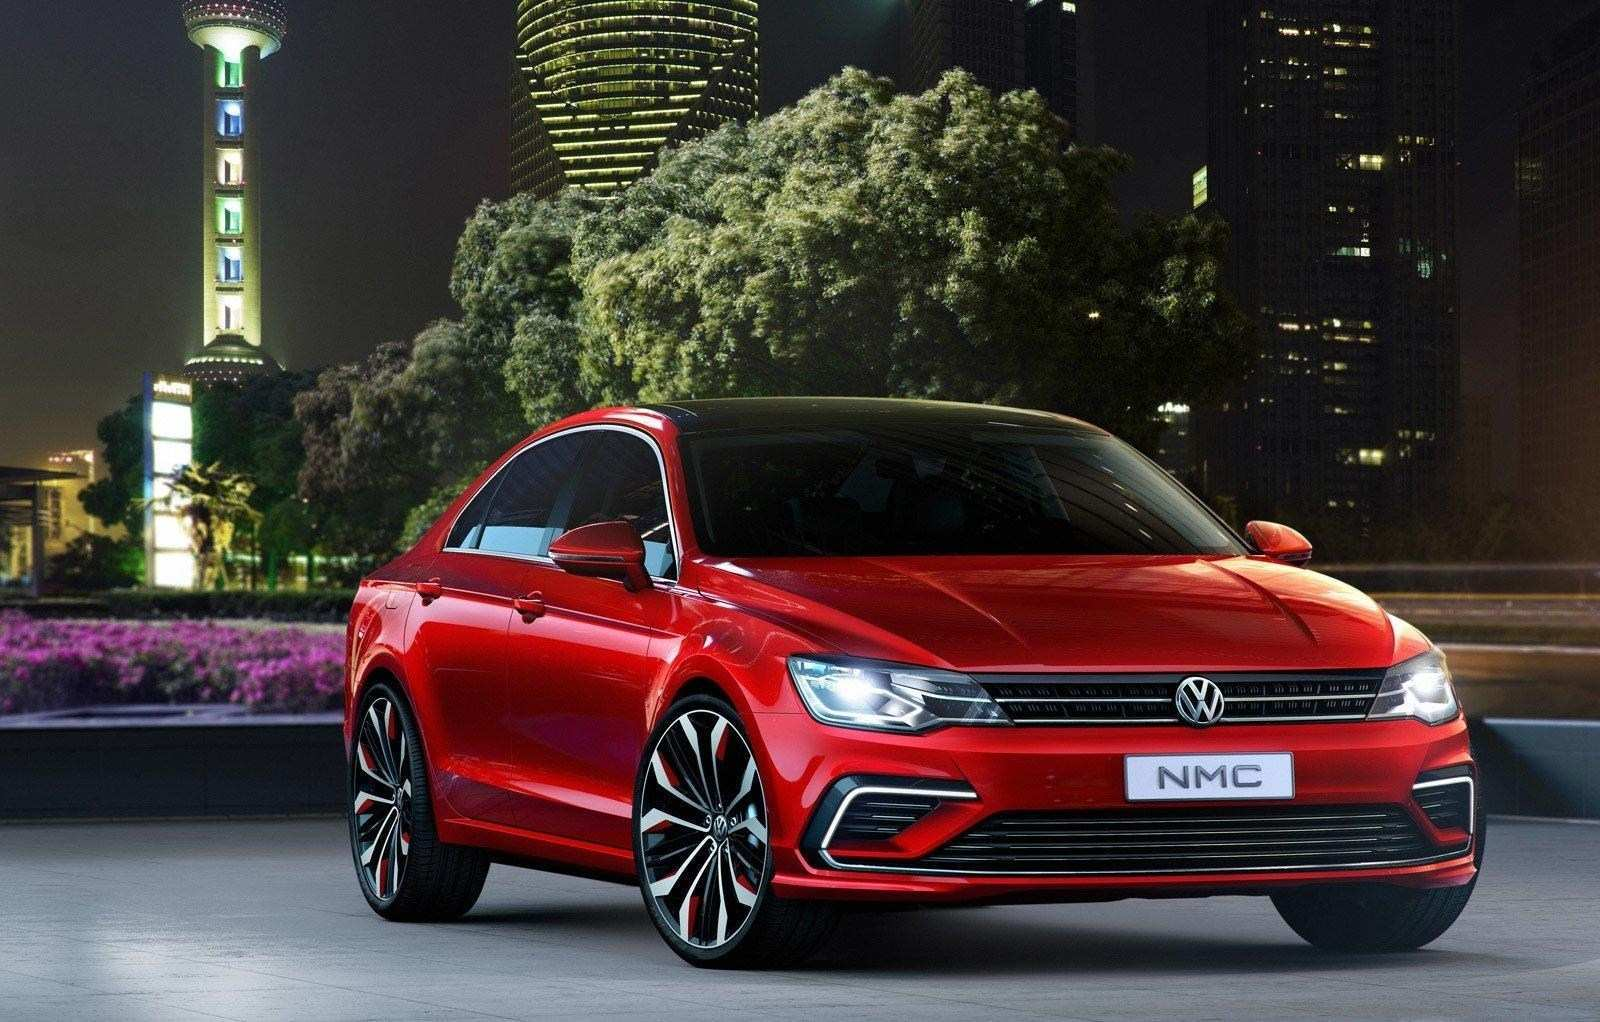 31 New 2019 Vw Jetta Tdi Engine with 2019 Vw Jetta Tdi